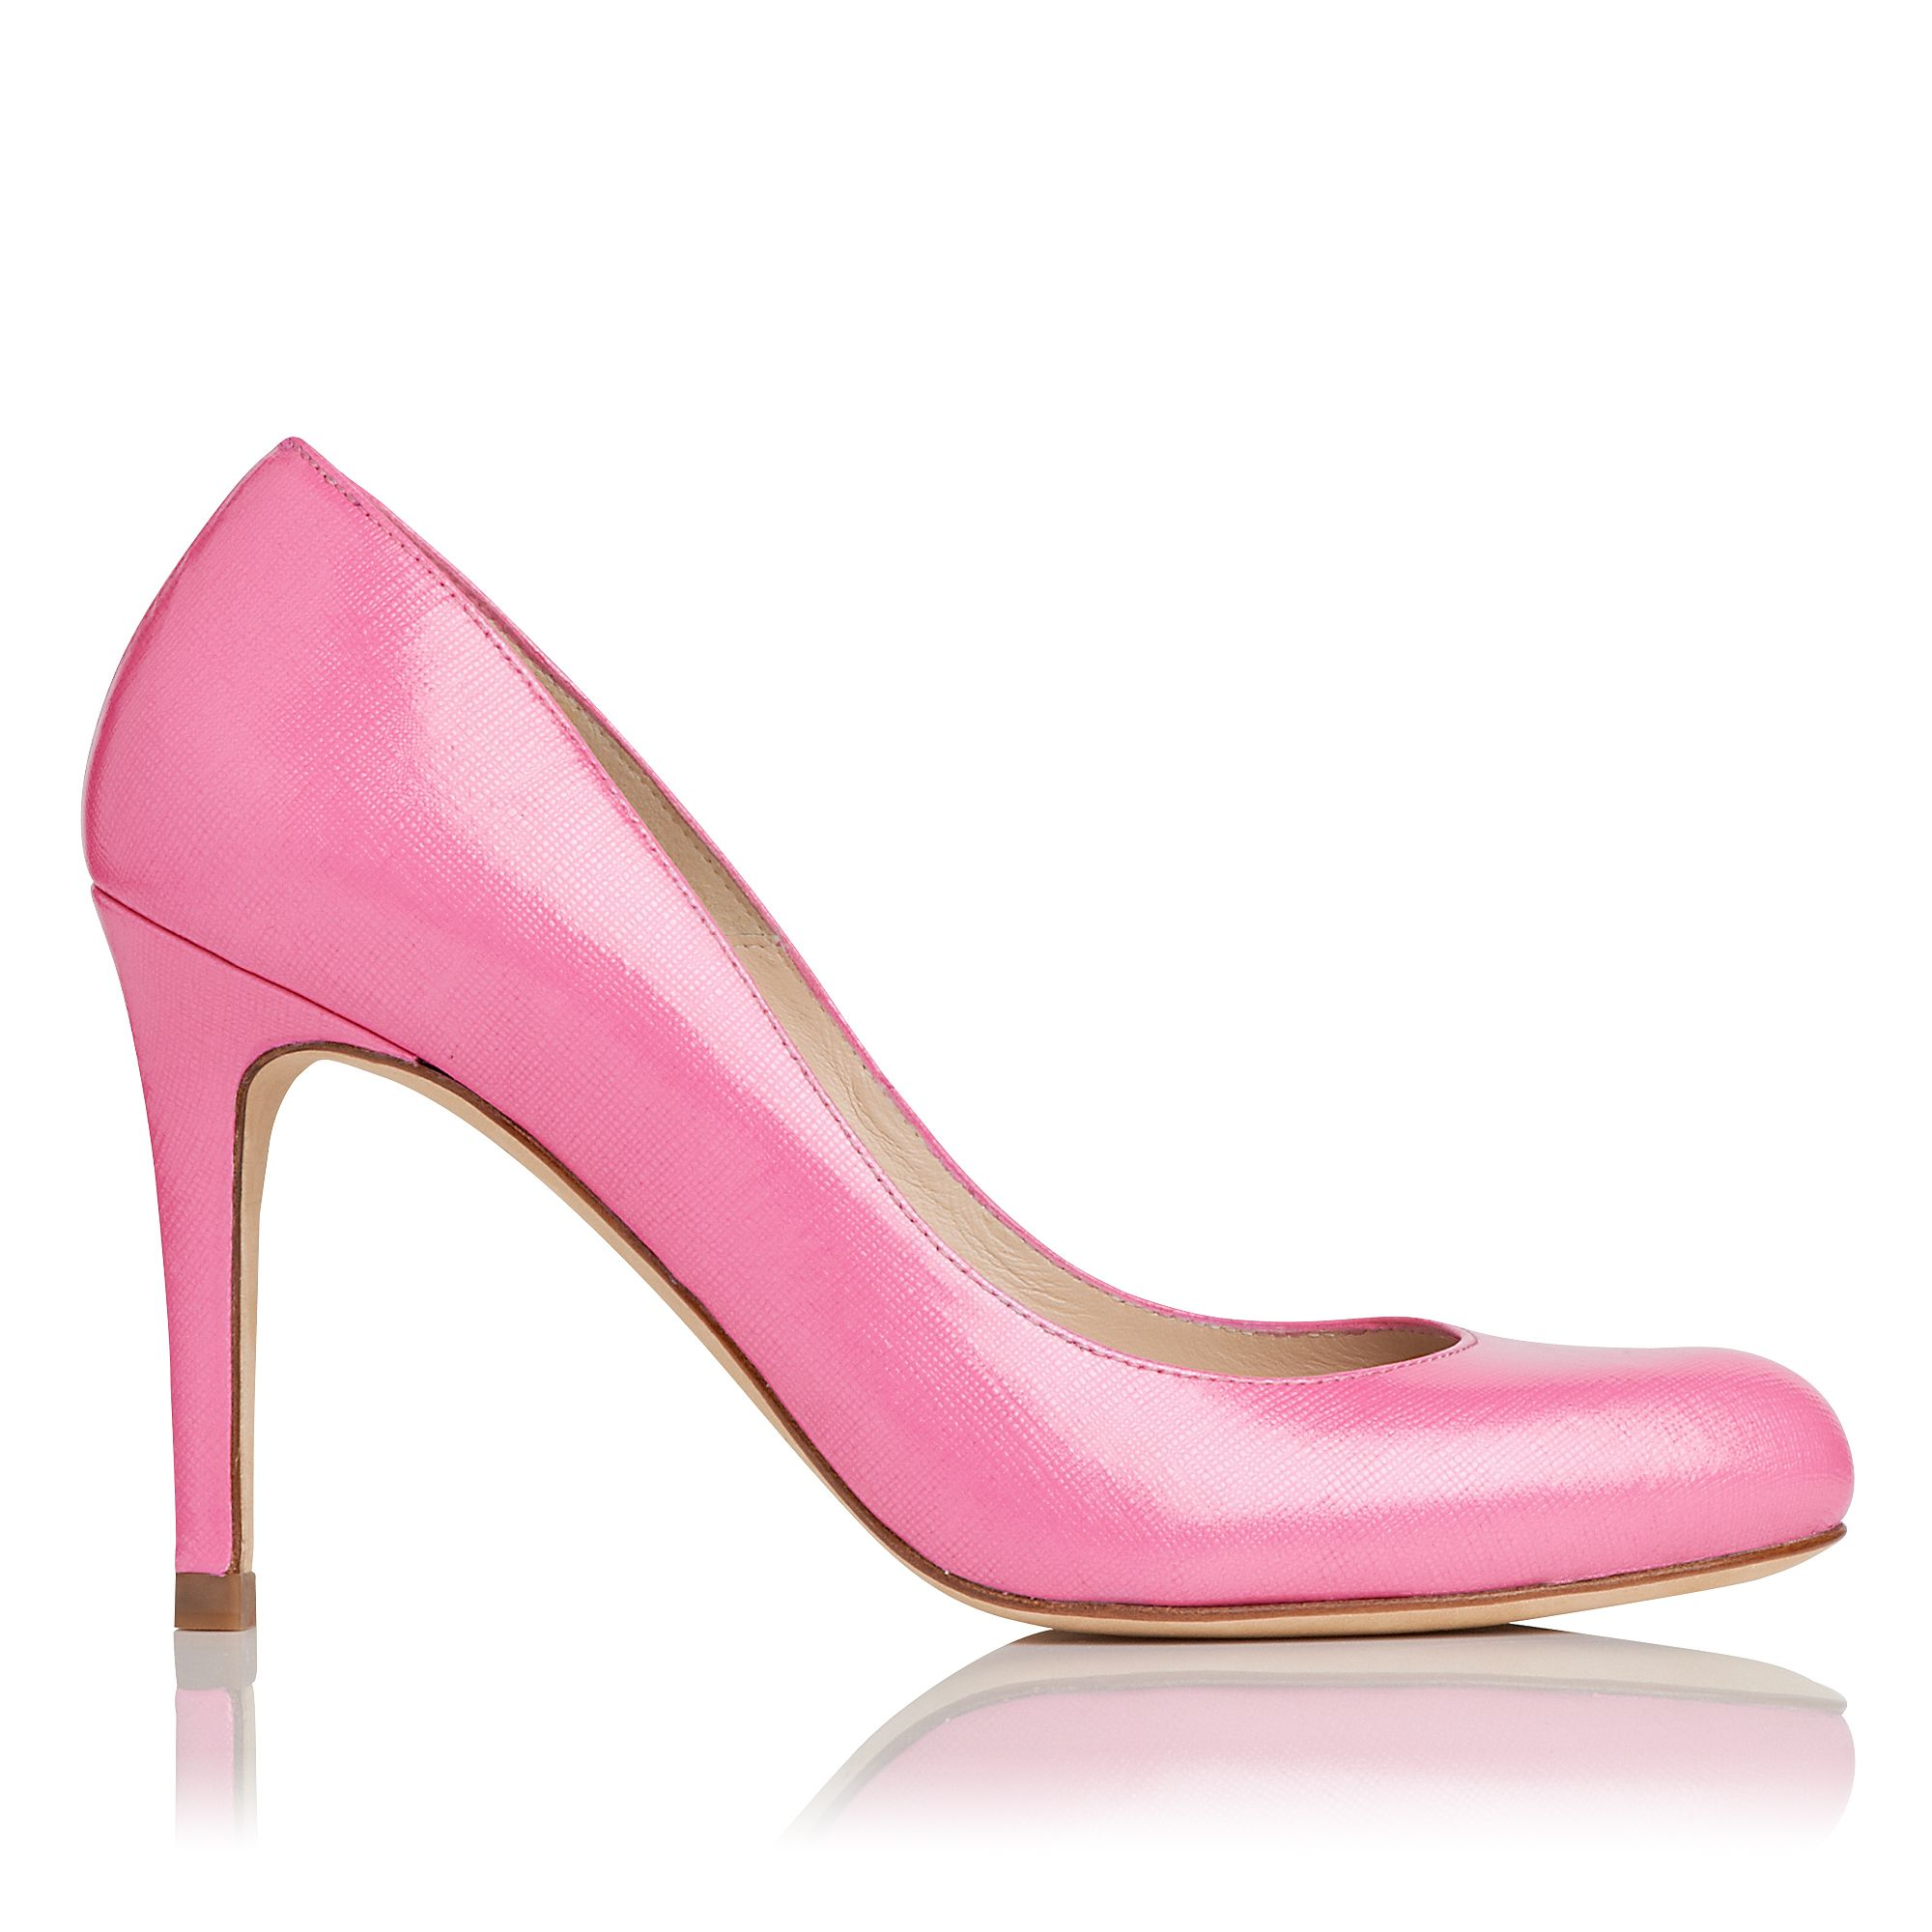 Stila saffiano leather court shoes